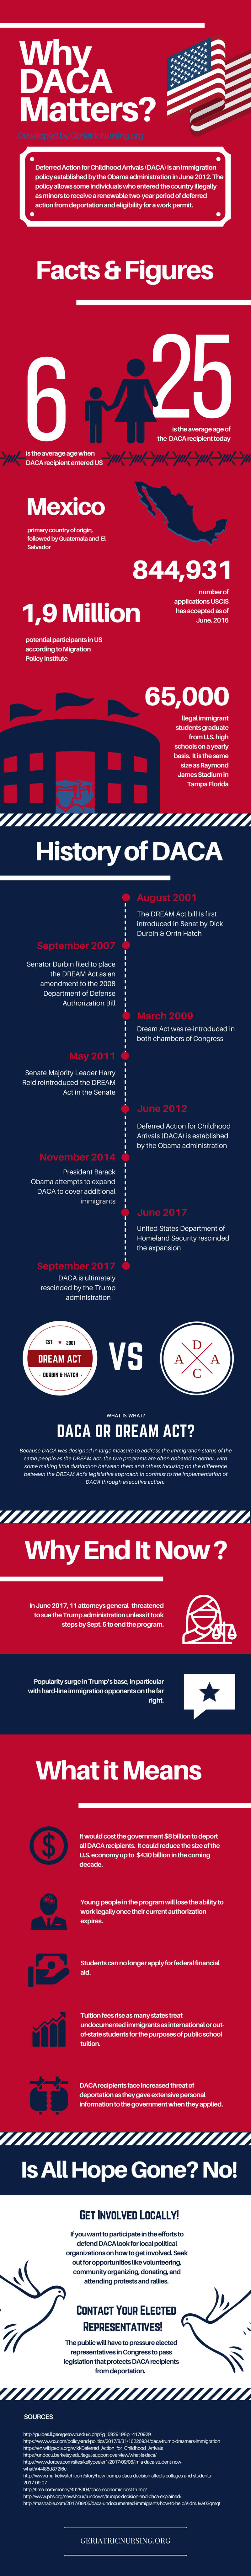 Why DACA Matters?